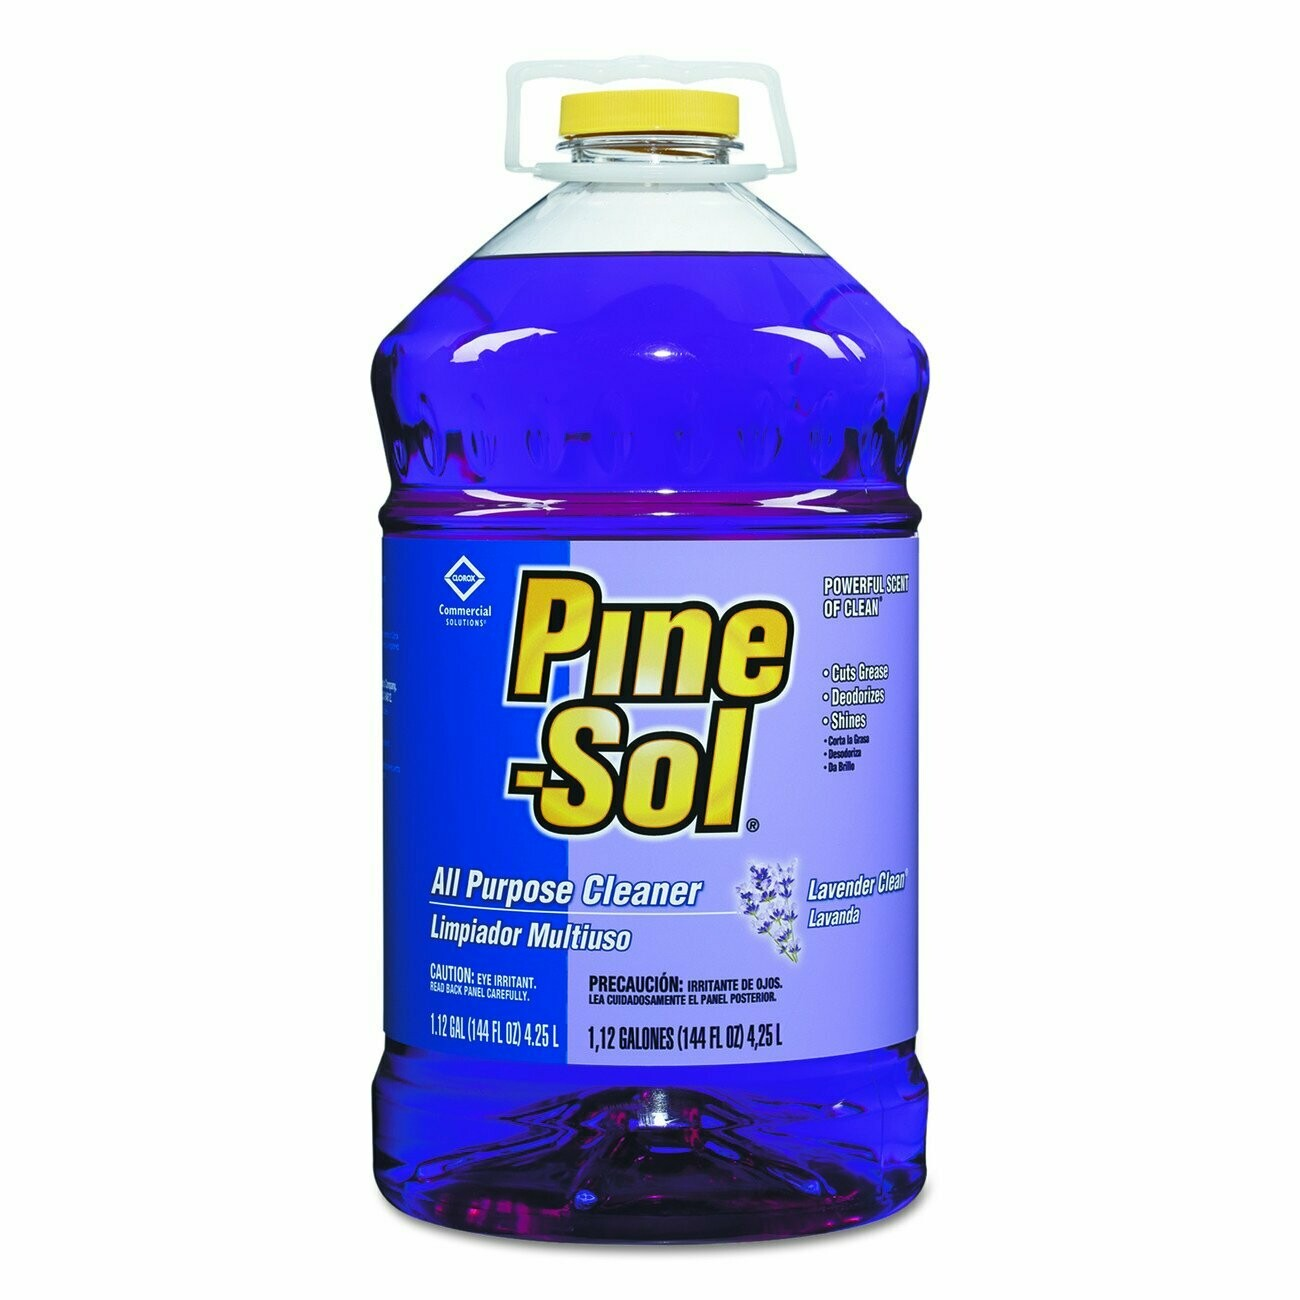 * Pine-Sol All Purpose Cleaner Lavender Clean 144 Ounces Bottle